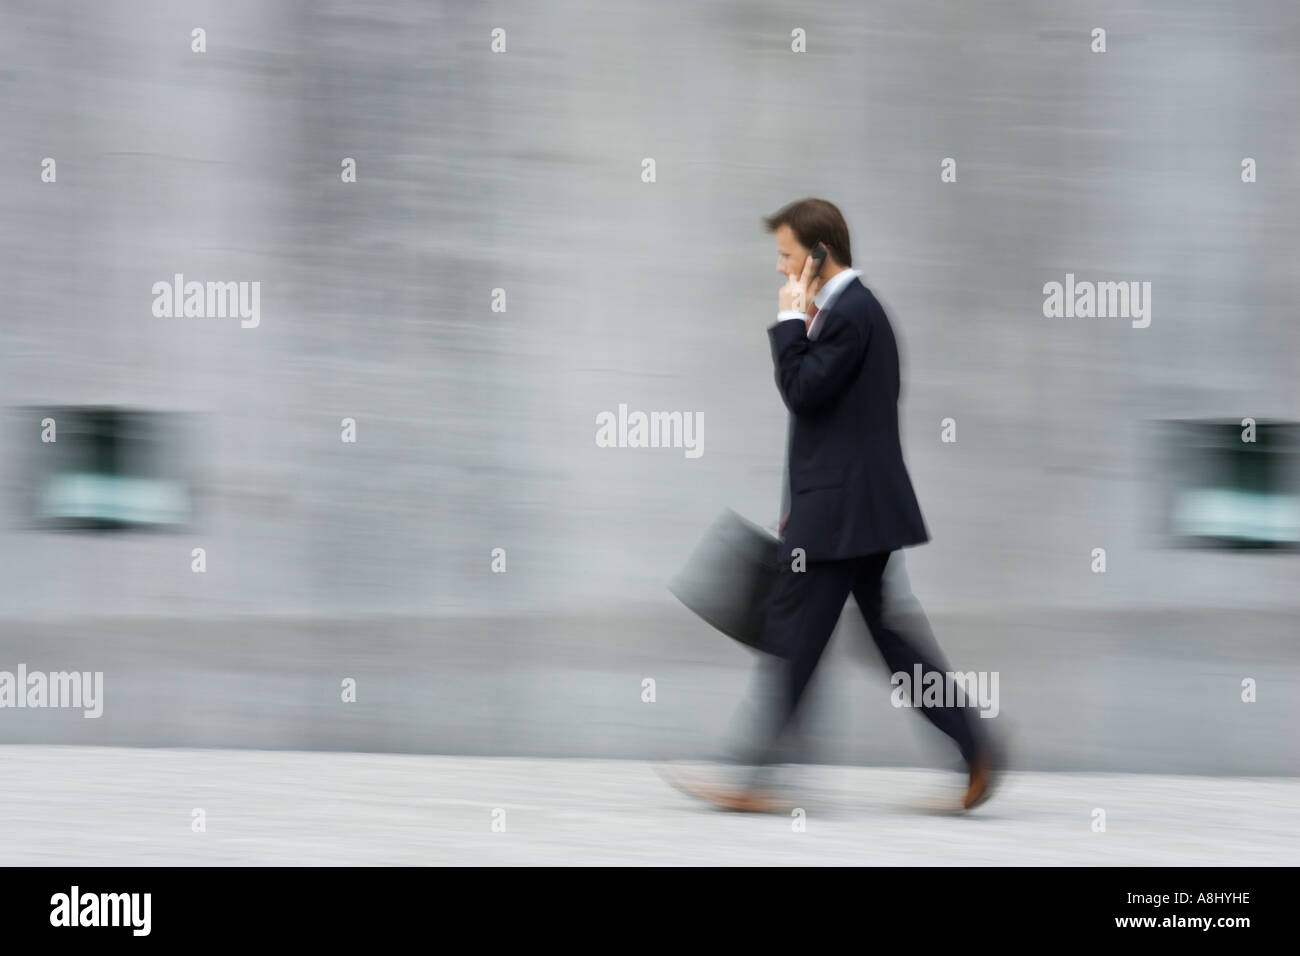 Blurred picture of an huried up business man with executive case in front of an high concrete wall in Munich - Stock Image